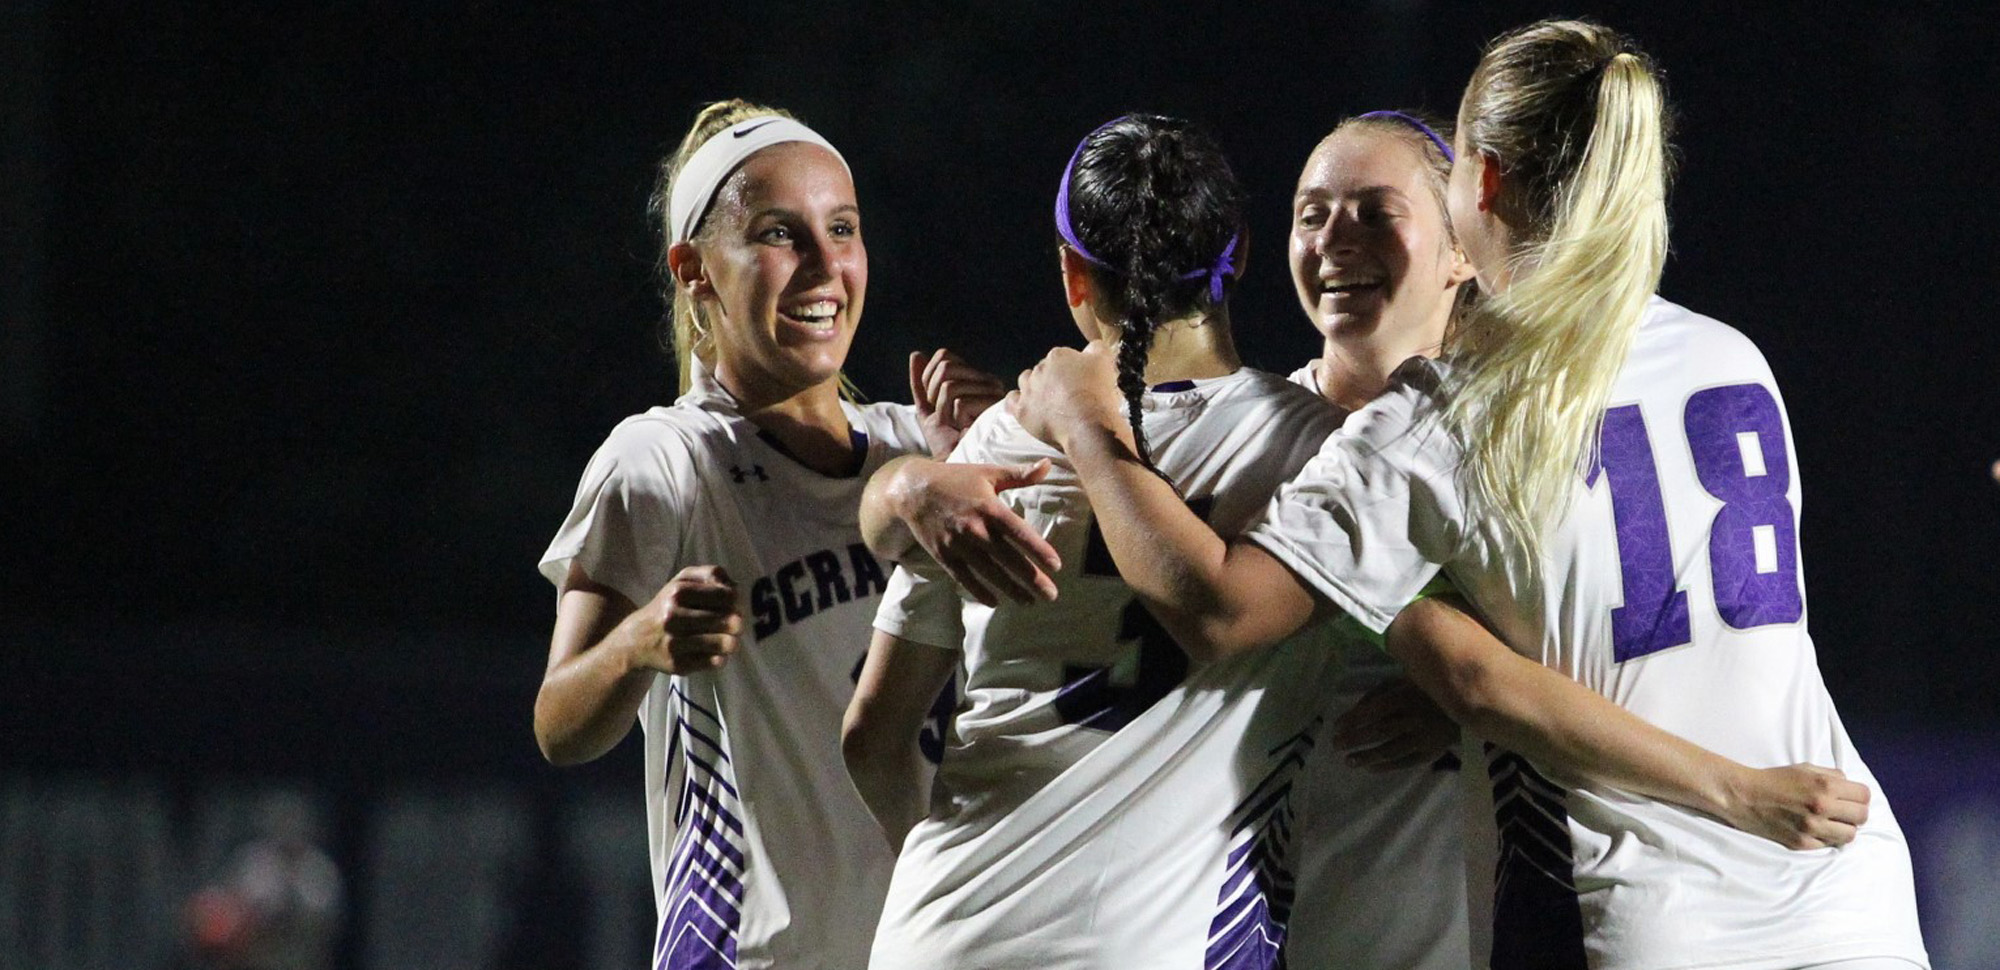 For the first time since the 2003 season, Scranton's women's soccer team will end the year ranked in the Top 25 in the final United Soccer Coaches Poll, which was released on Tuesday.